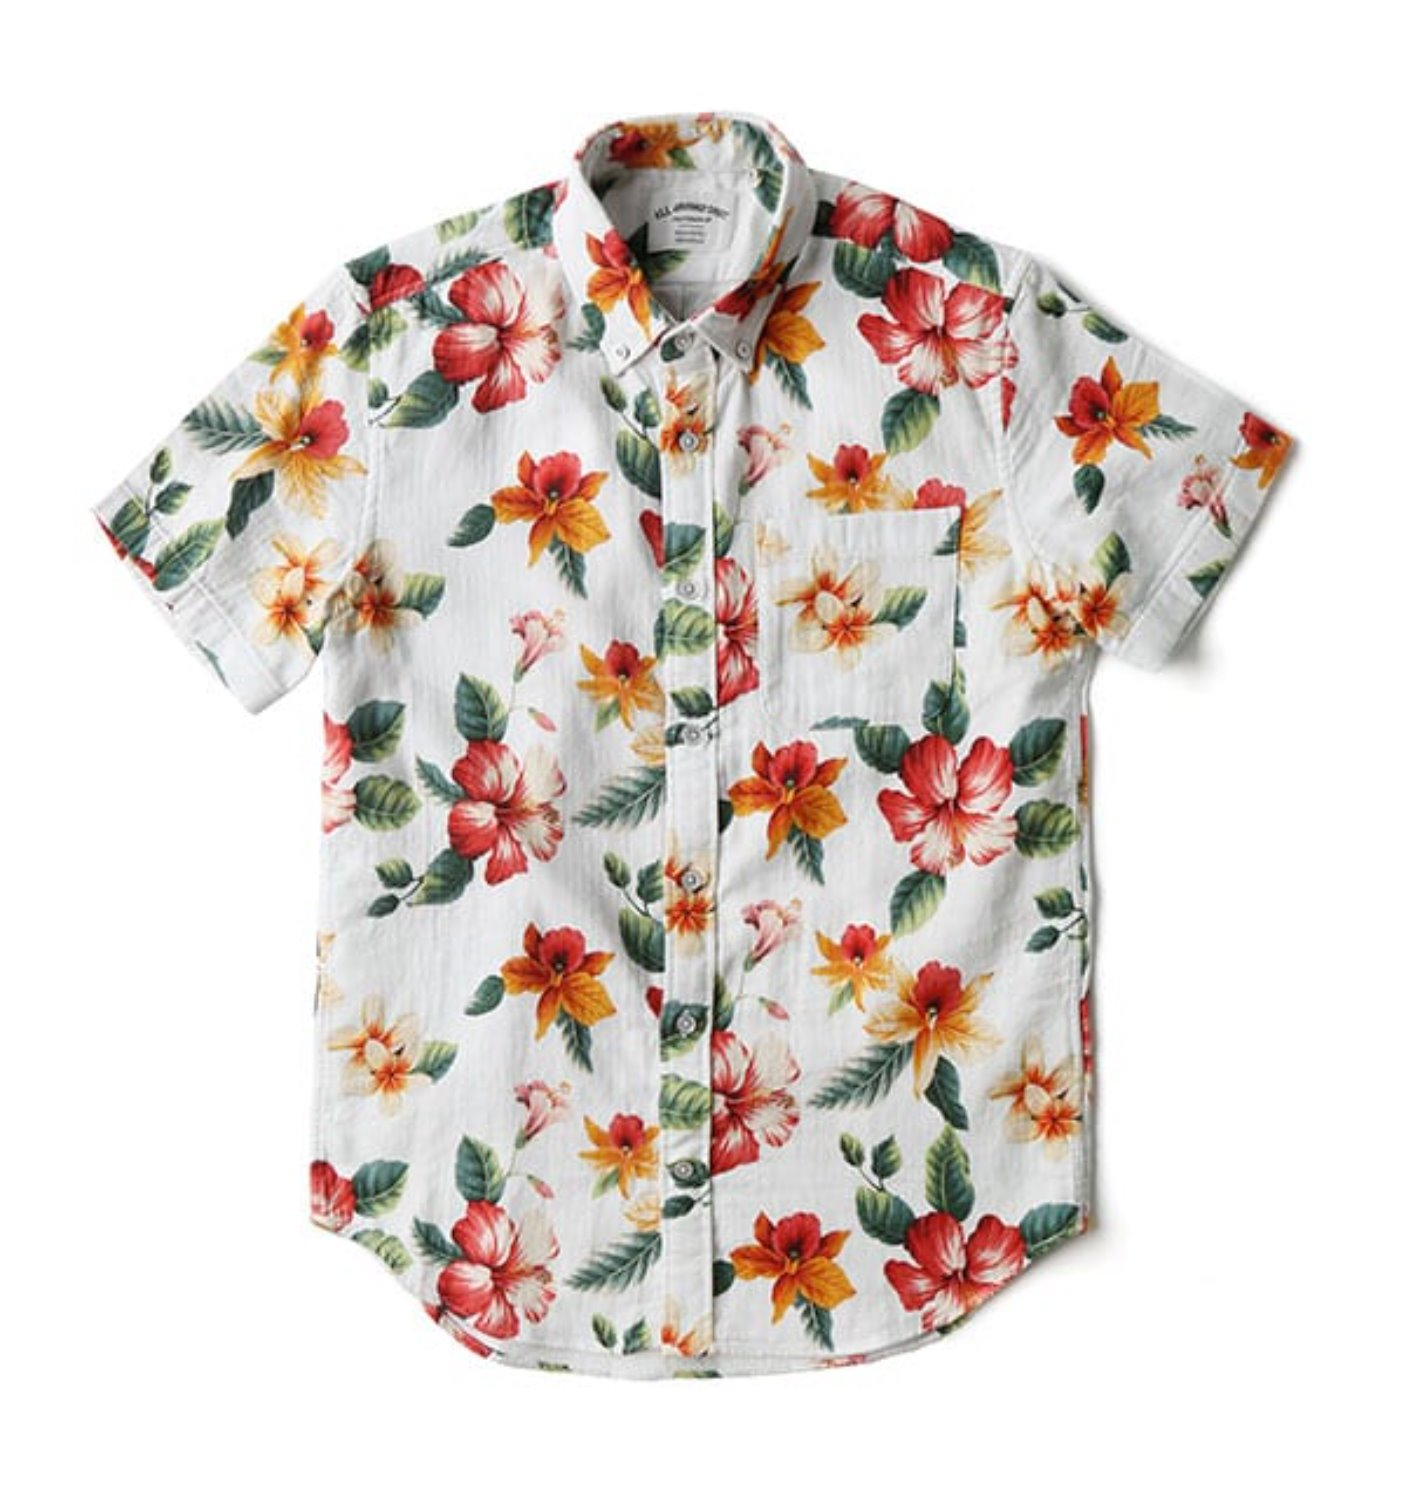 BAS01 WHITE/ORANGE HERRINGBONE HAWAIIAN SHIRT